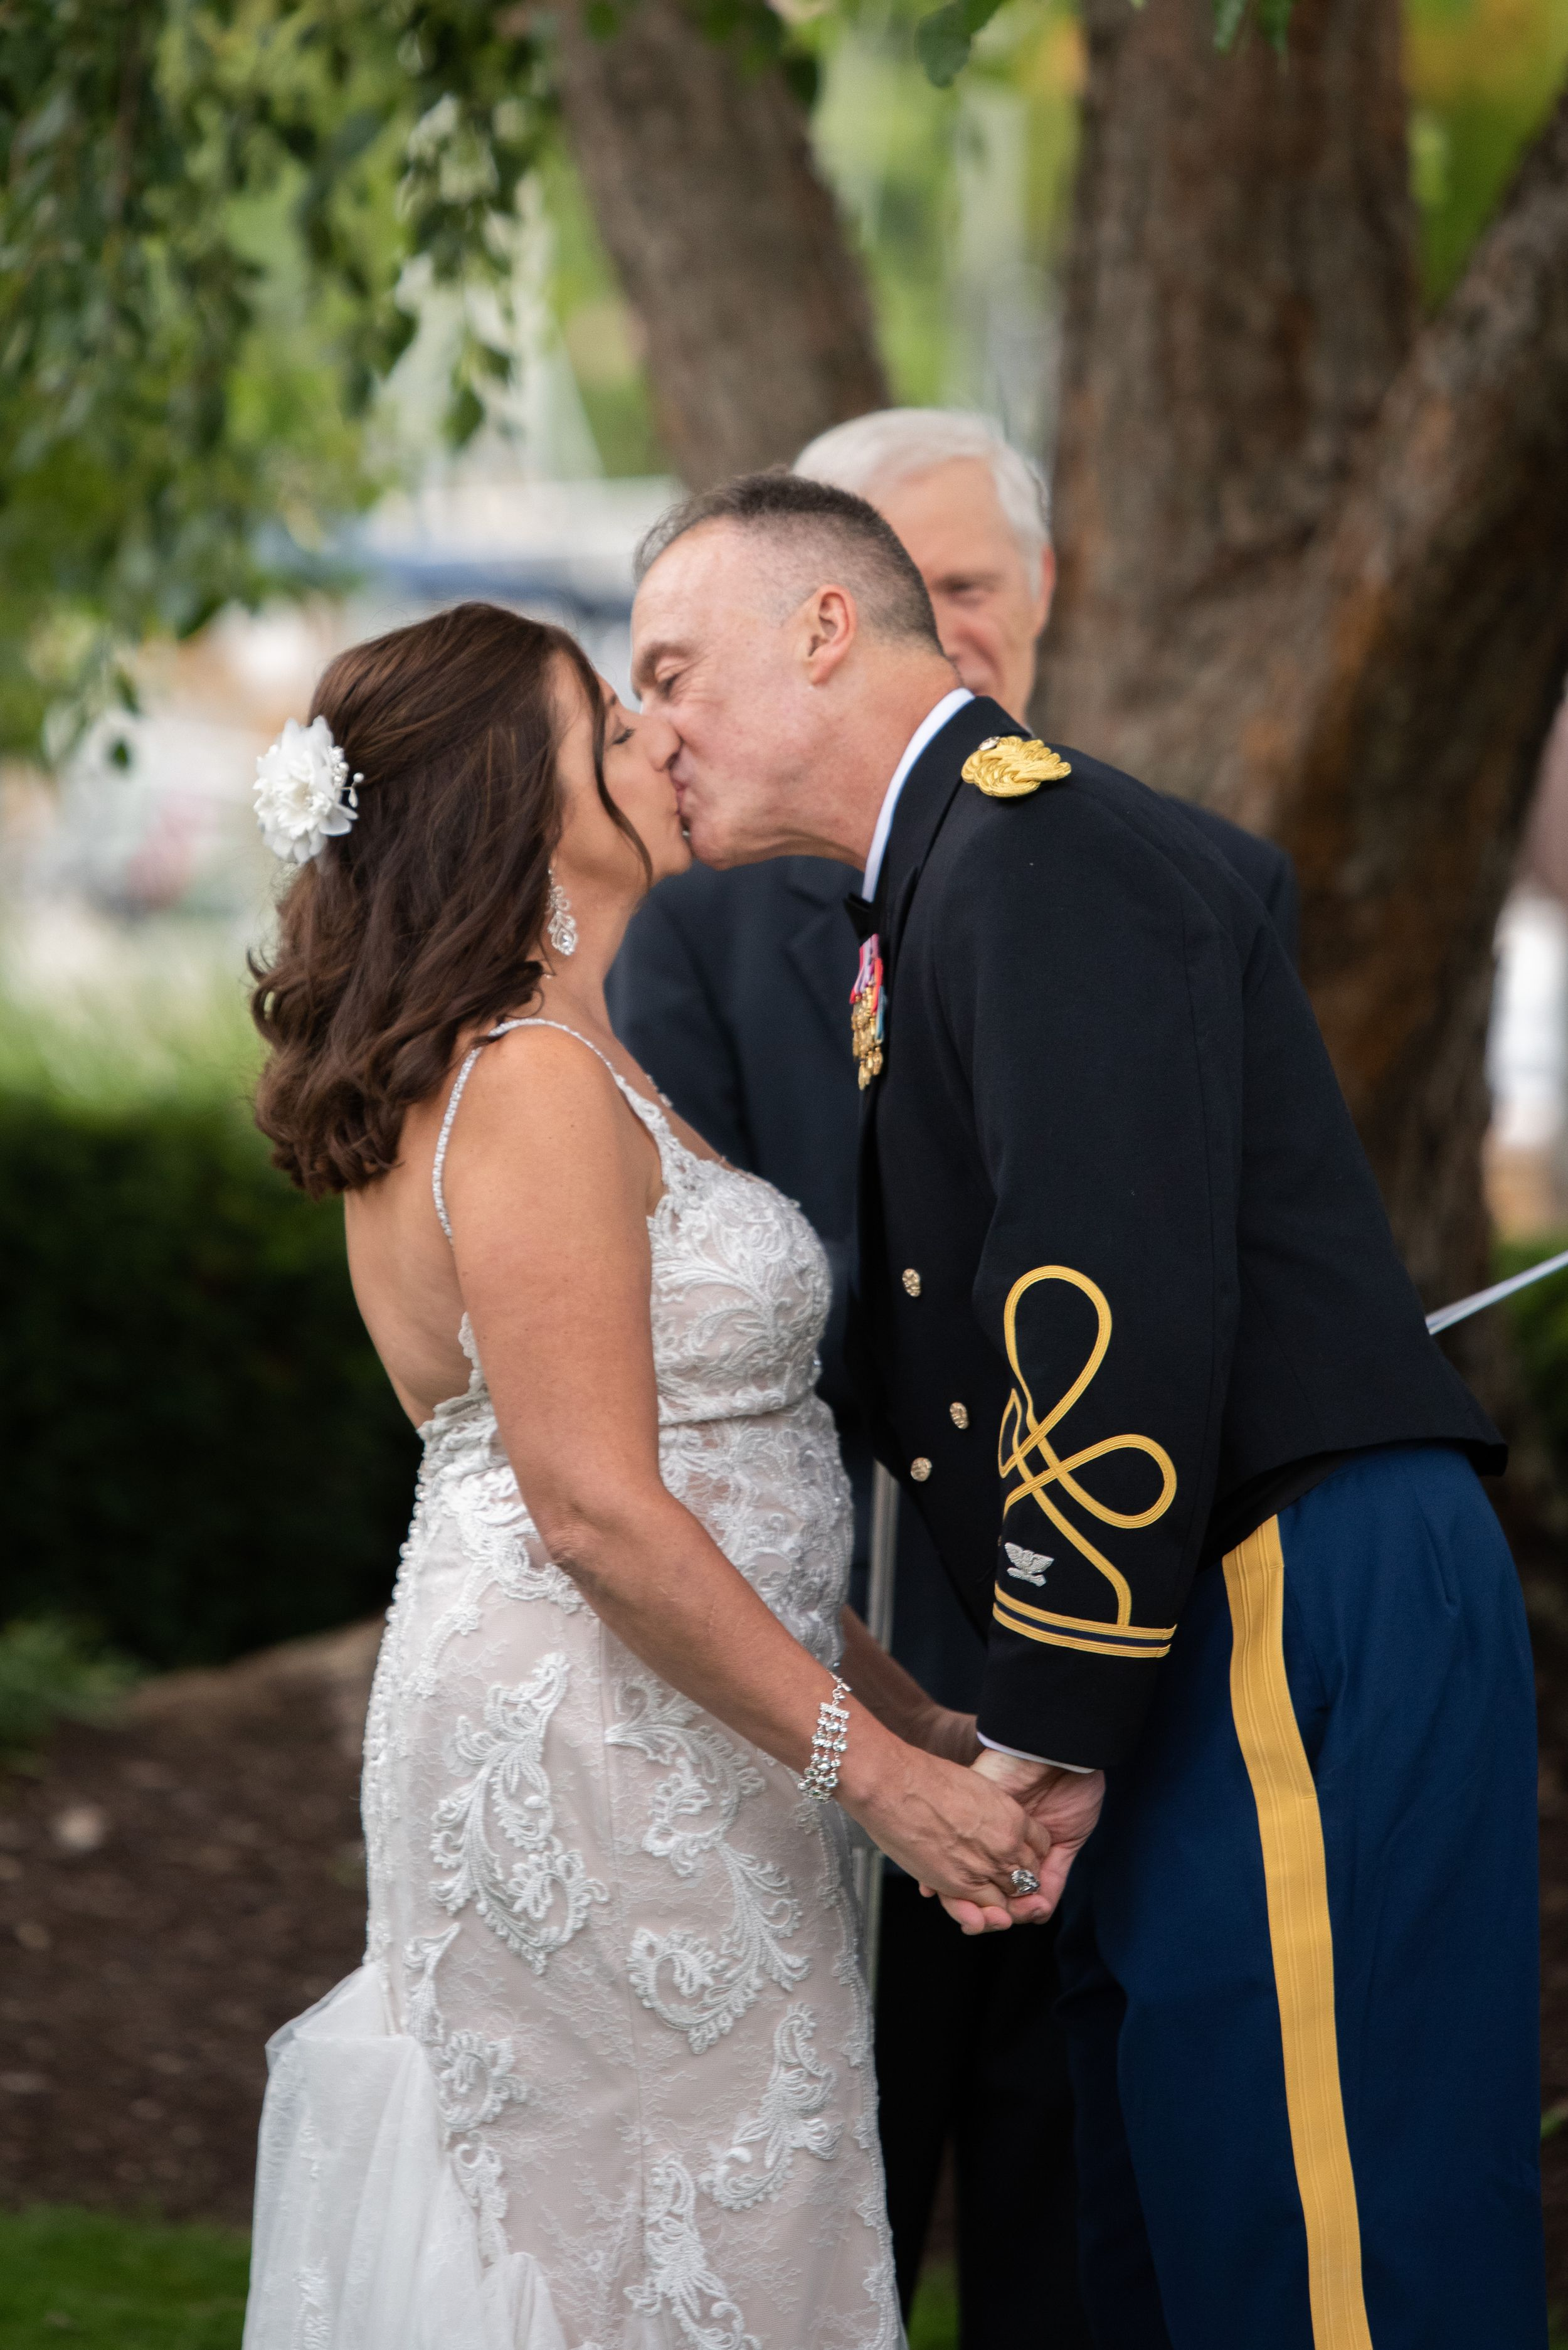 first kiss at outdoor wedding, Cleveland Yachting Club, Ohio